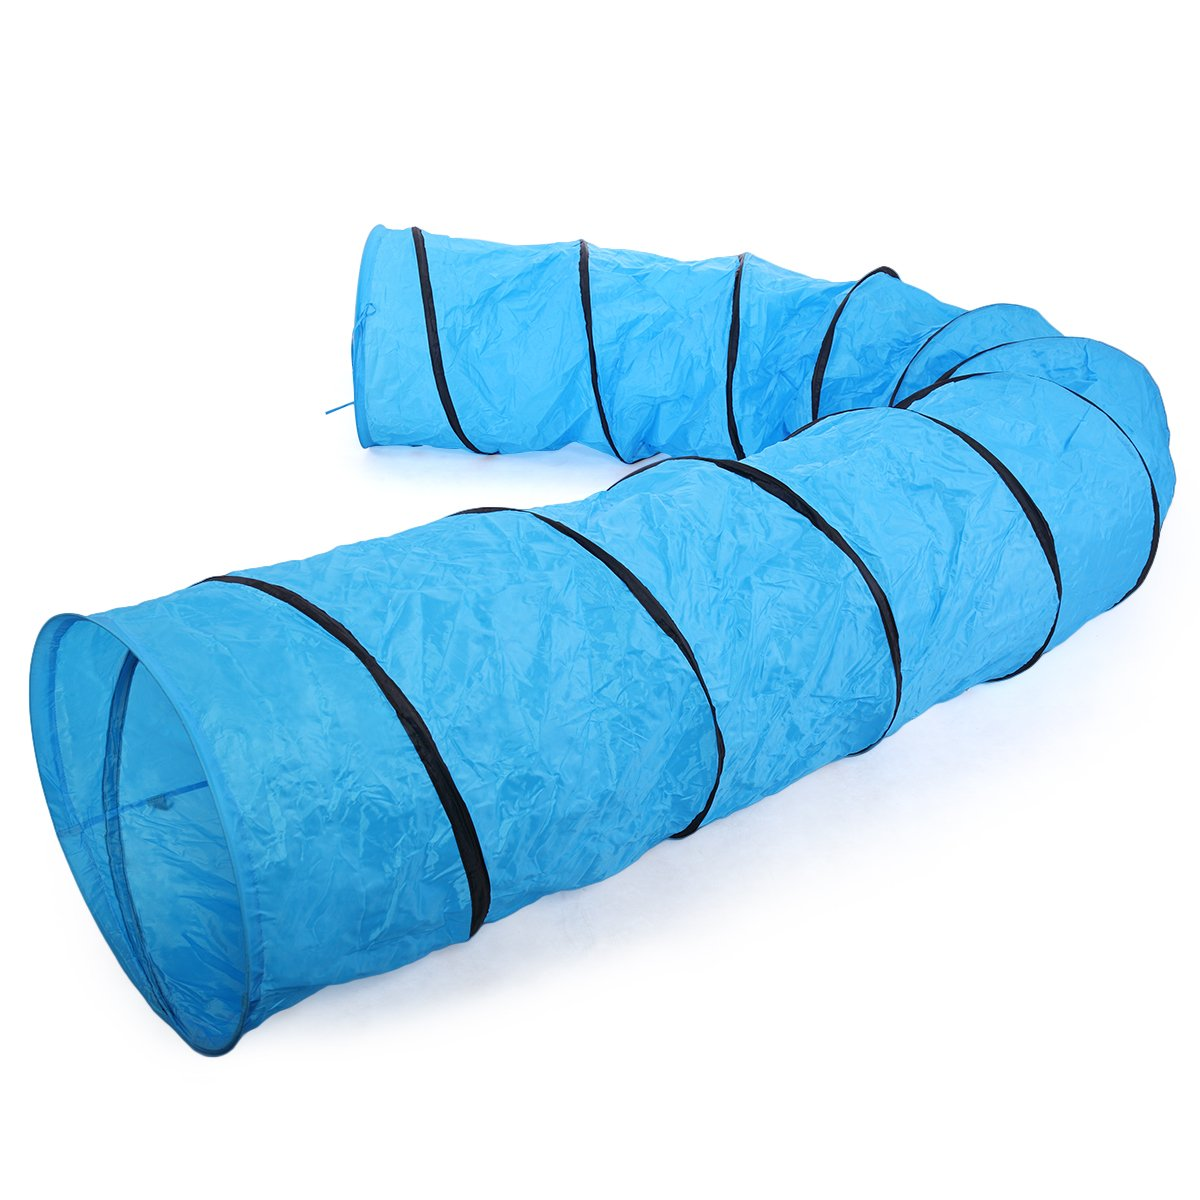 TOBBI Agility Pet Tunnel Training Toy Open Equipment Dog Outdoor Obedience Exercise by TOBBI